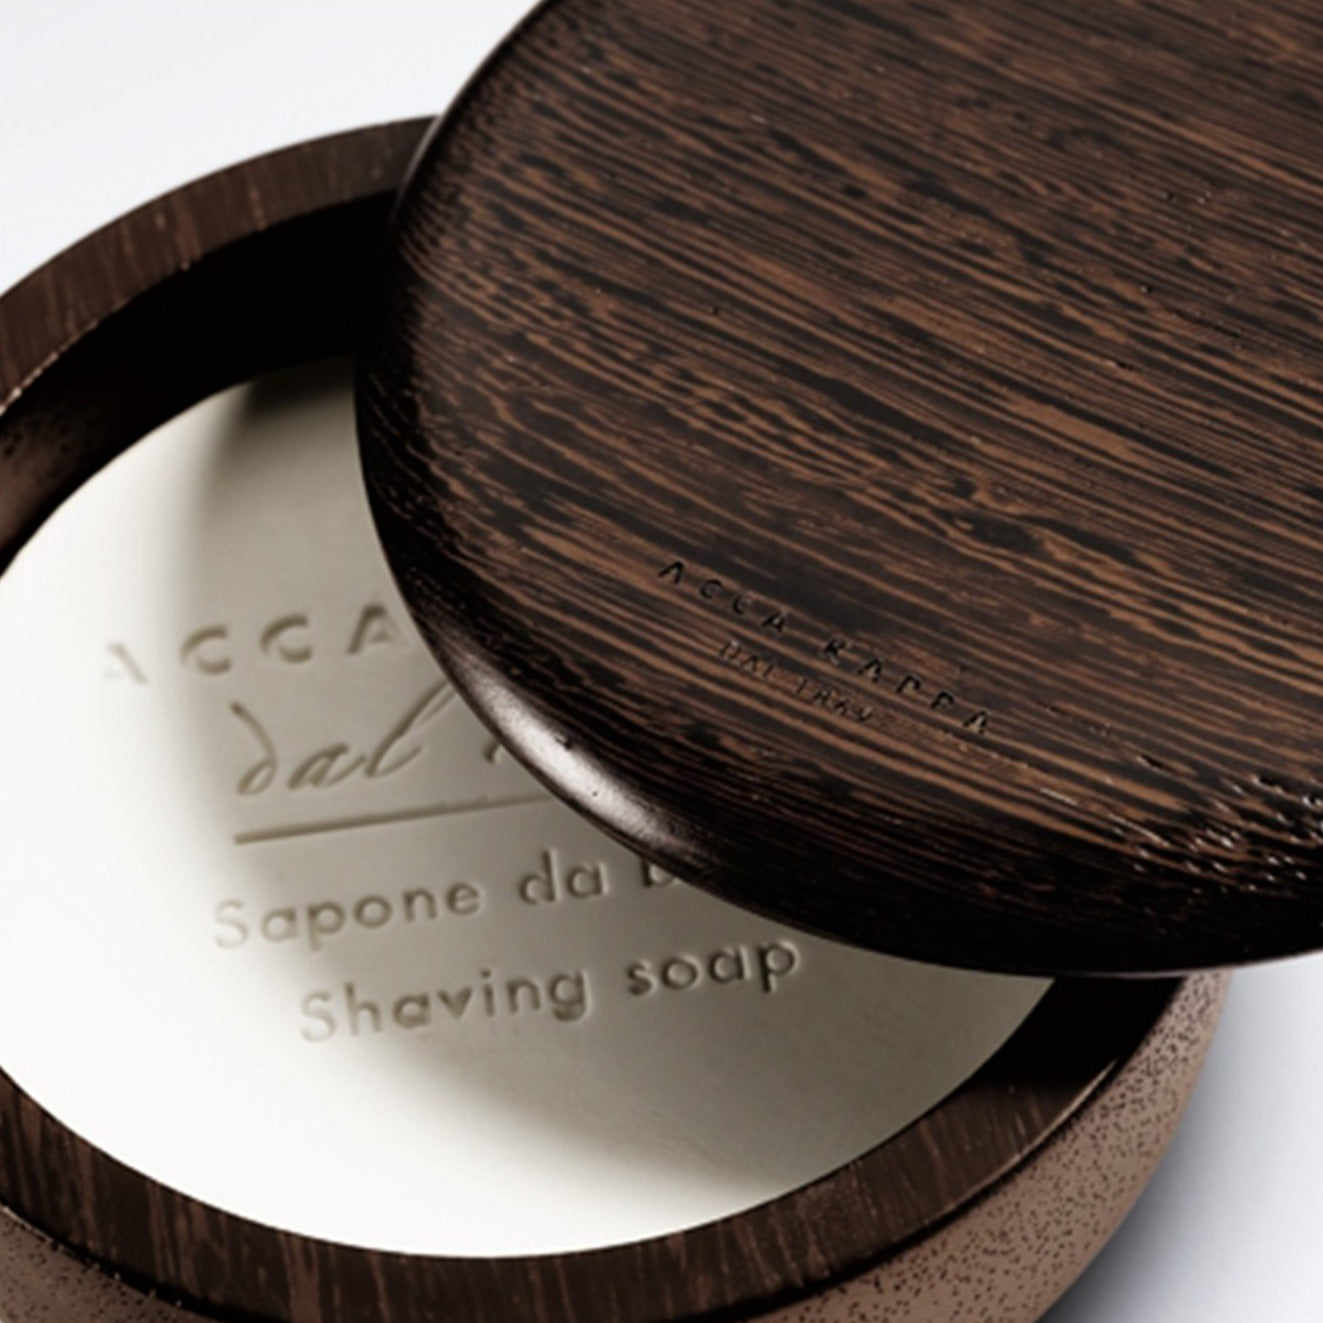 Acca Kappa Wenge Wood Bowl + 1869 Shave Soap